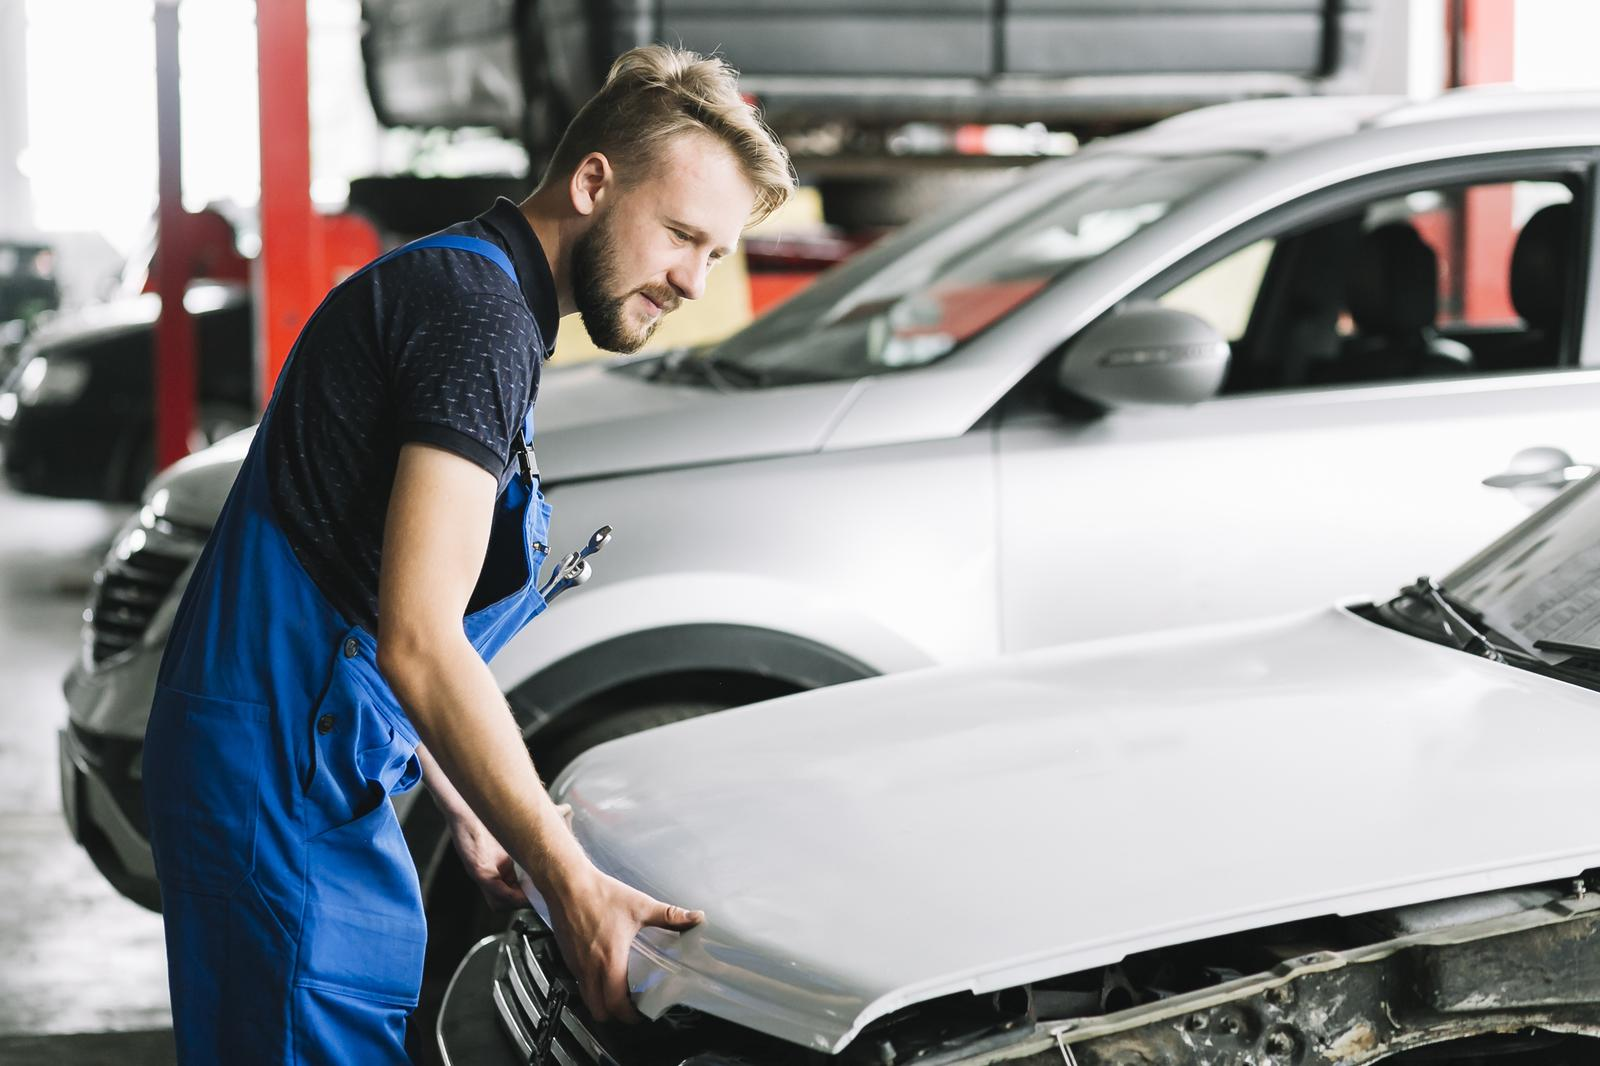 Manufacture of other parts and accessories for motor vehicles in Tartu county